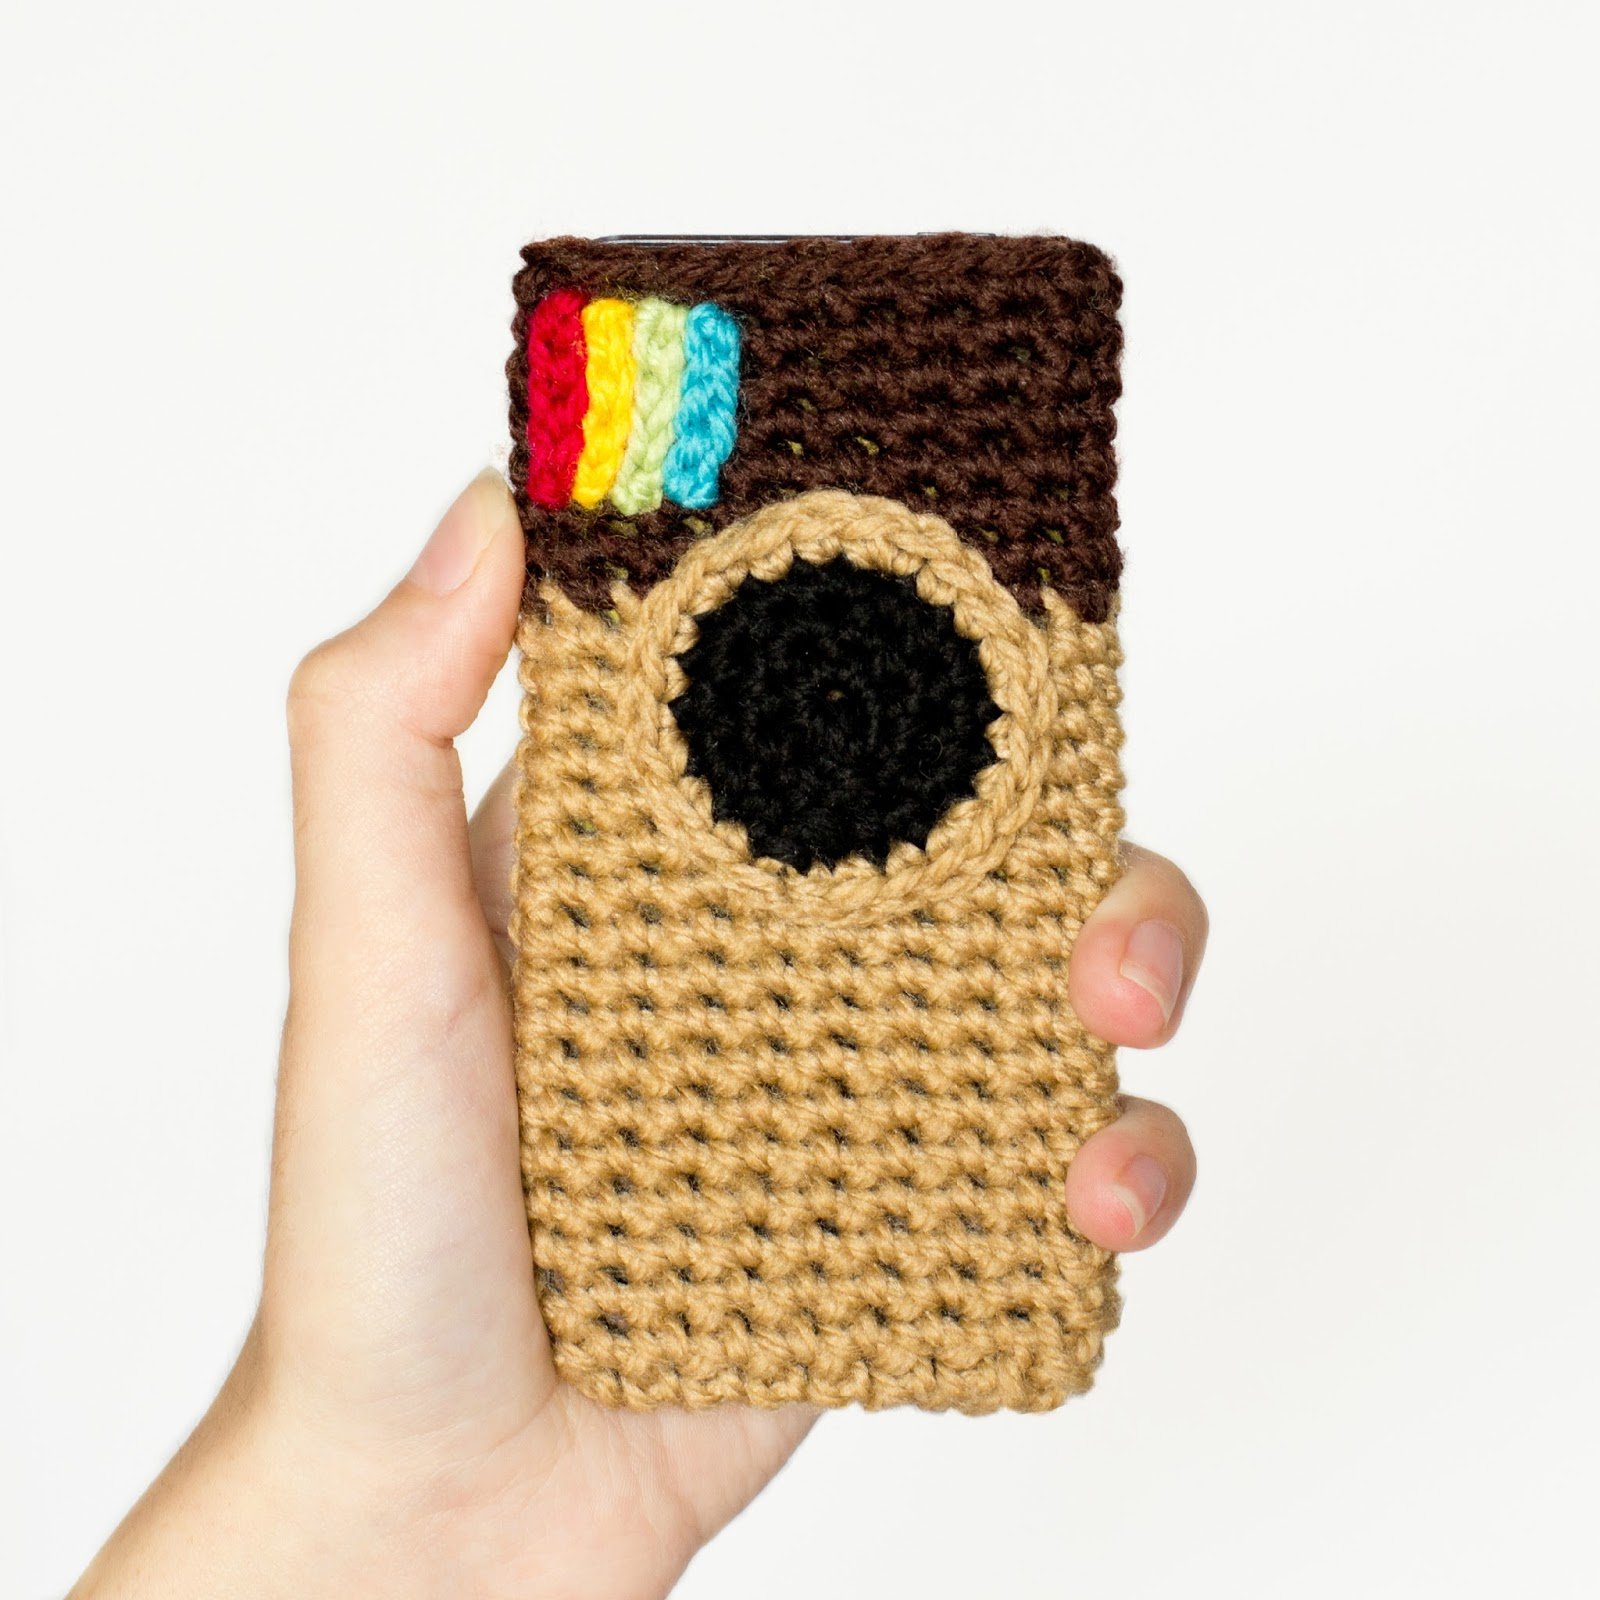 Free Crochet Pattern For I Phone Case : Hopeful Honey Craft, Crochet, Create: March 2014